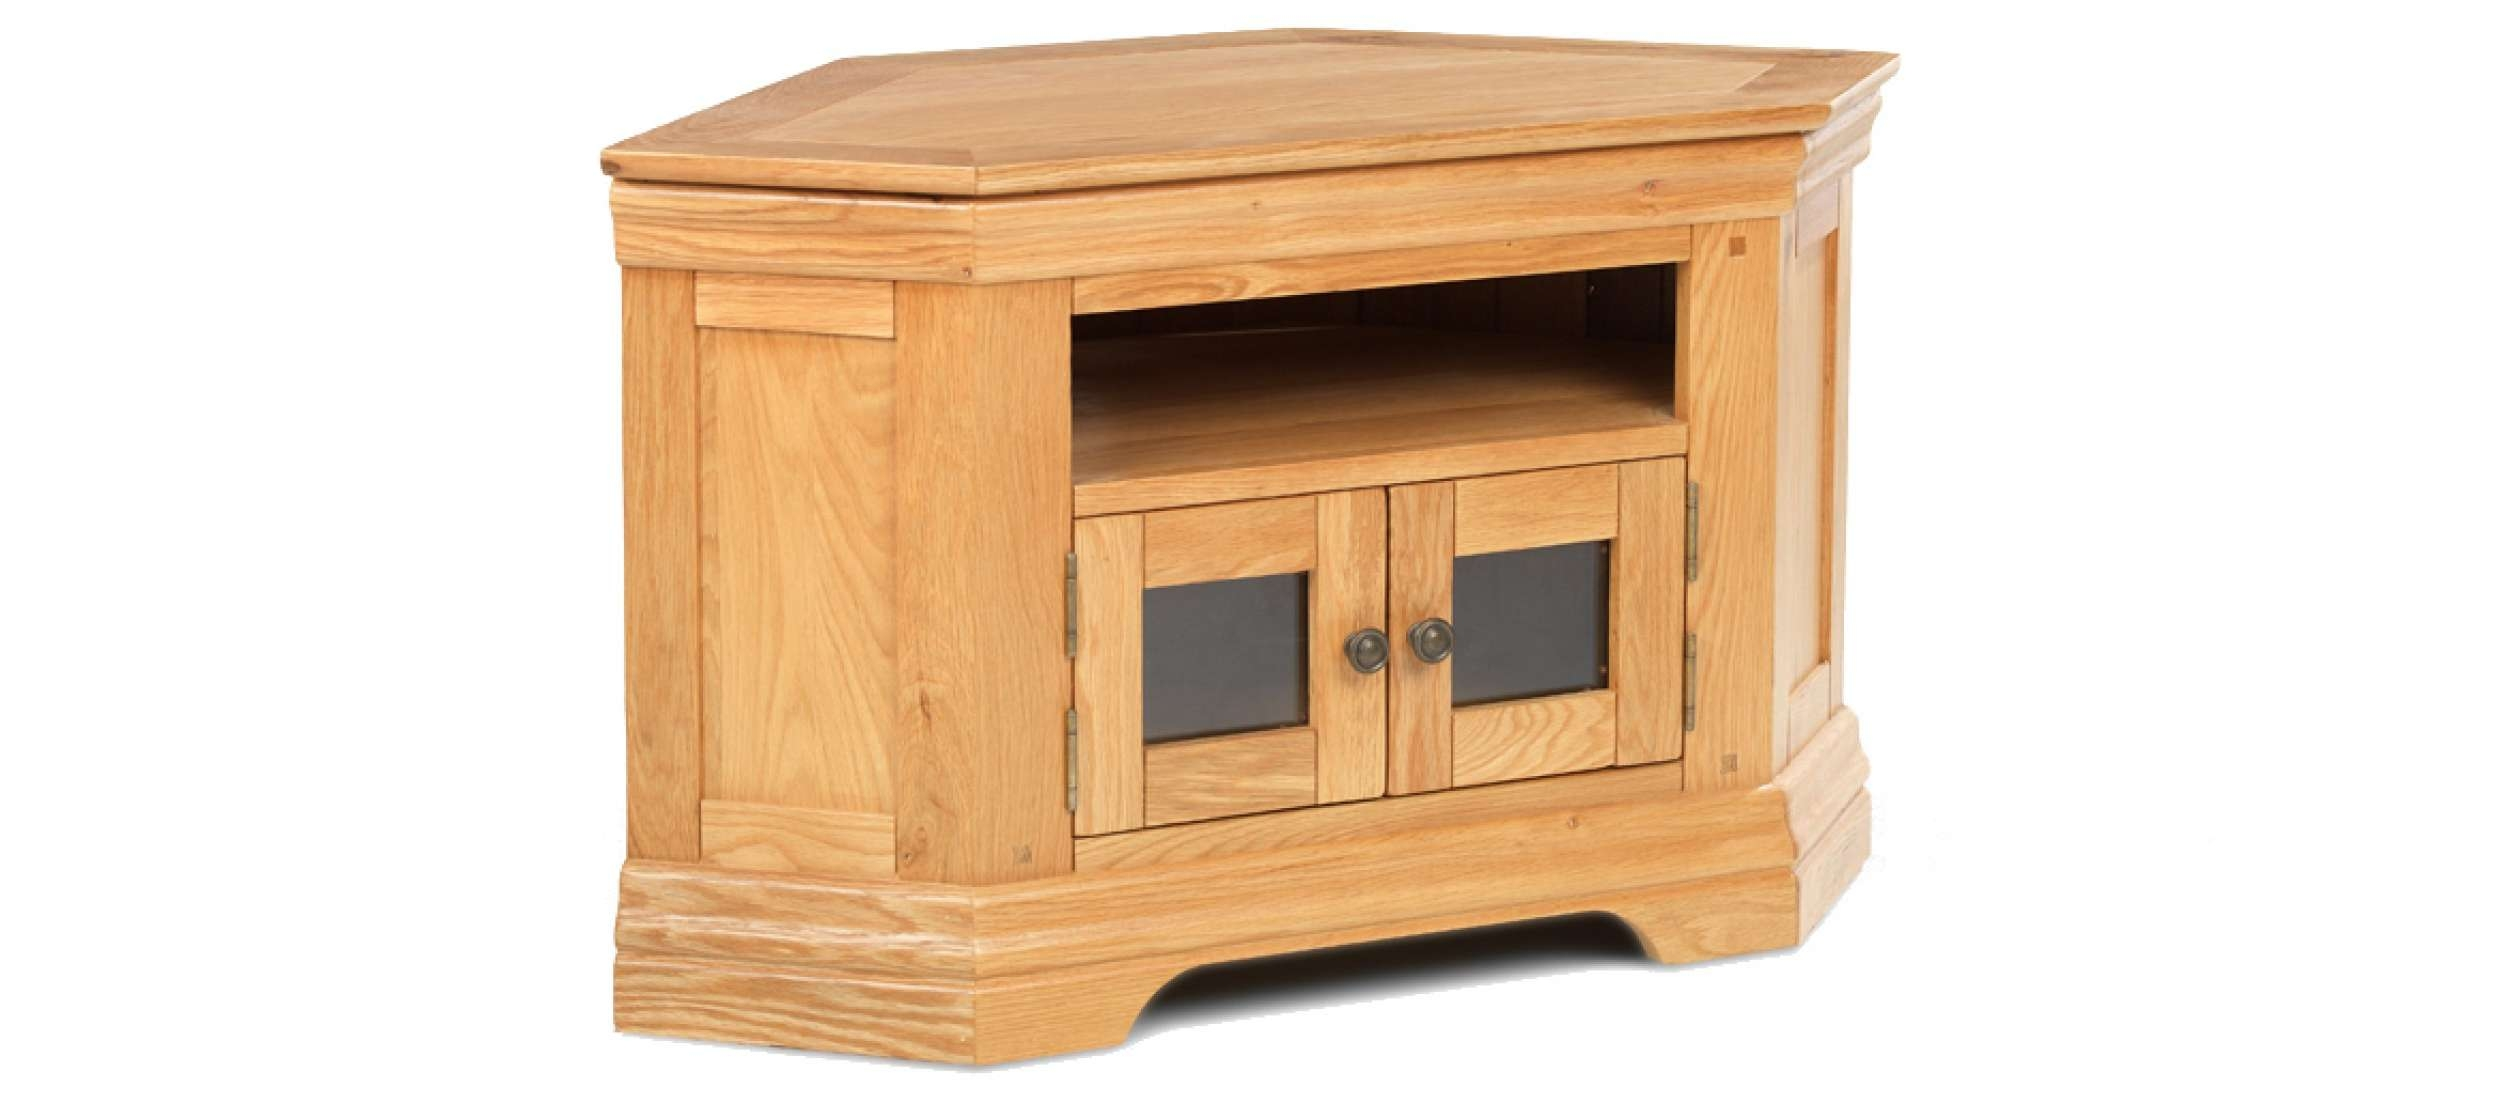 Constance Oak Corner Tv Cabinet | Quercus Living Intended For Wood Corner Tv Cabinets (View 8 of 20)